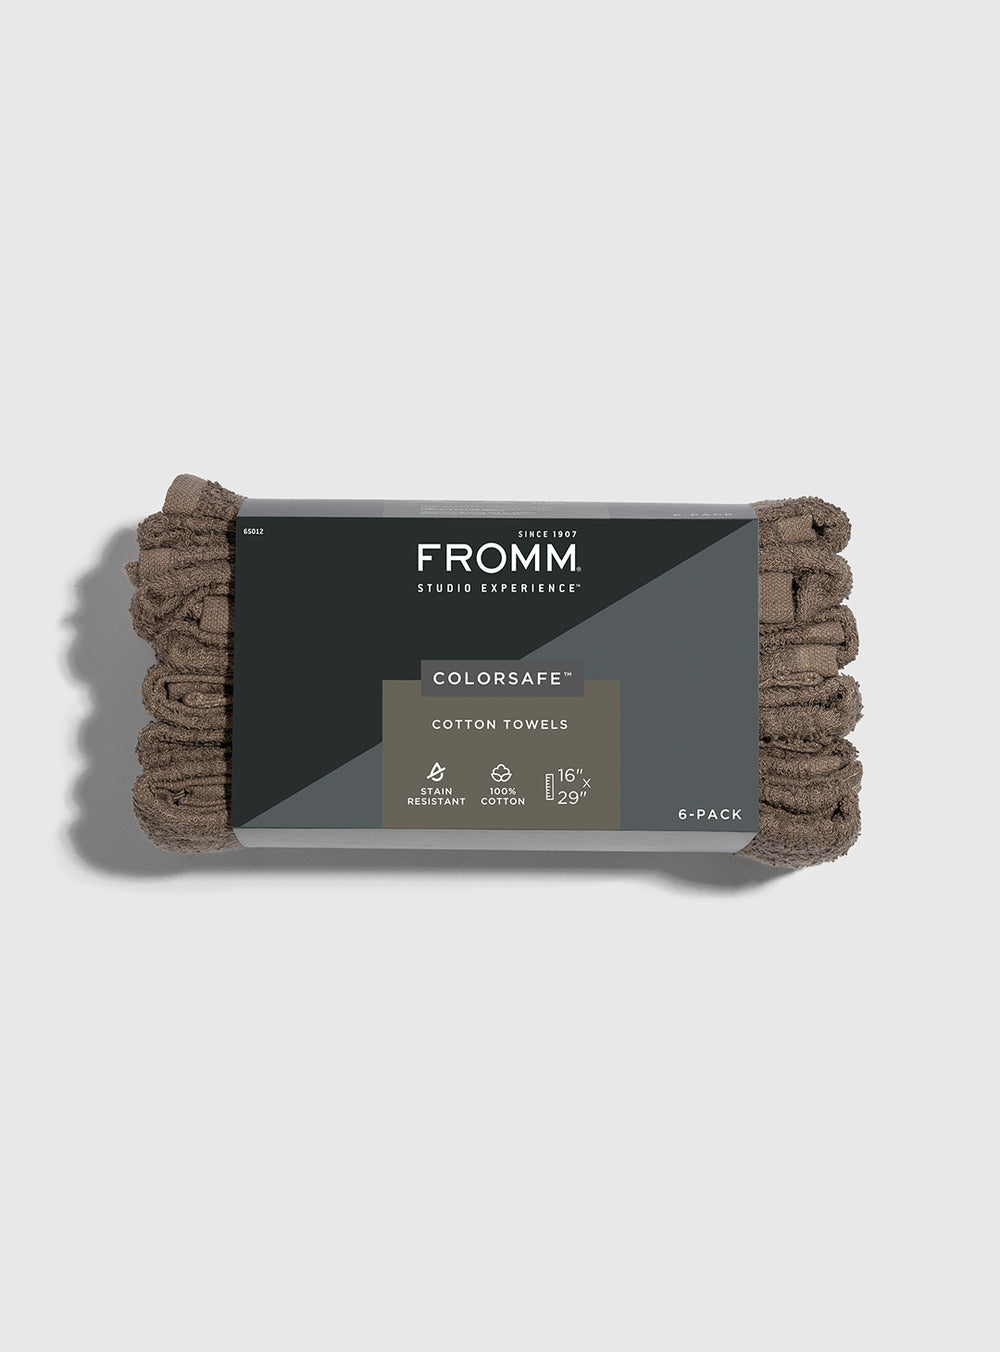 Fromm Pro Professional Hair Salon 6 Pack of Brown Colorsafe Cotton Towels